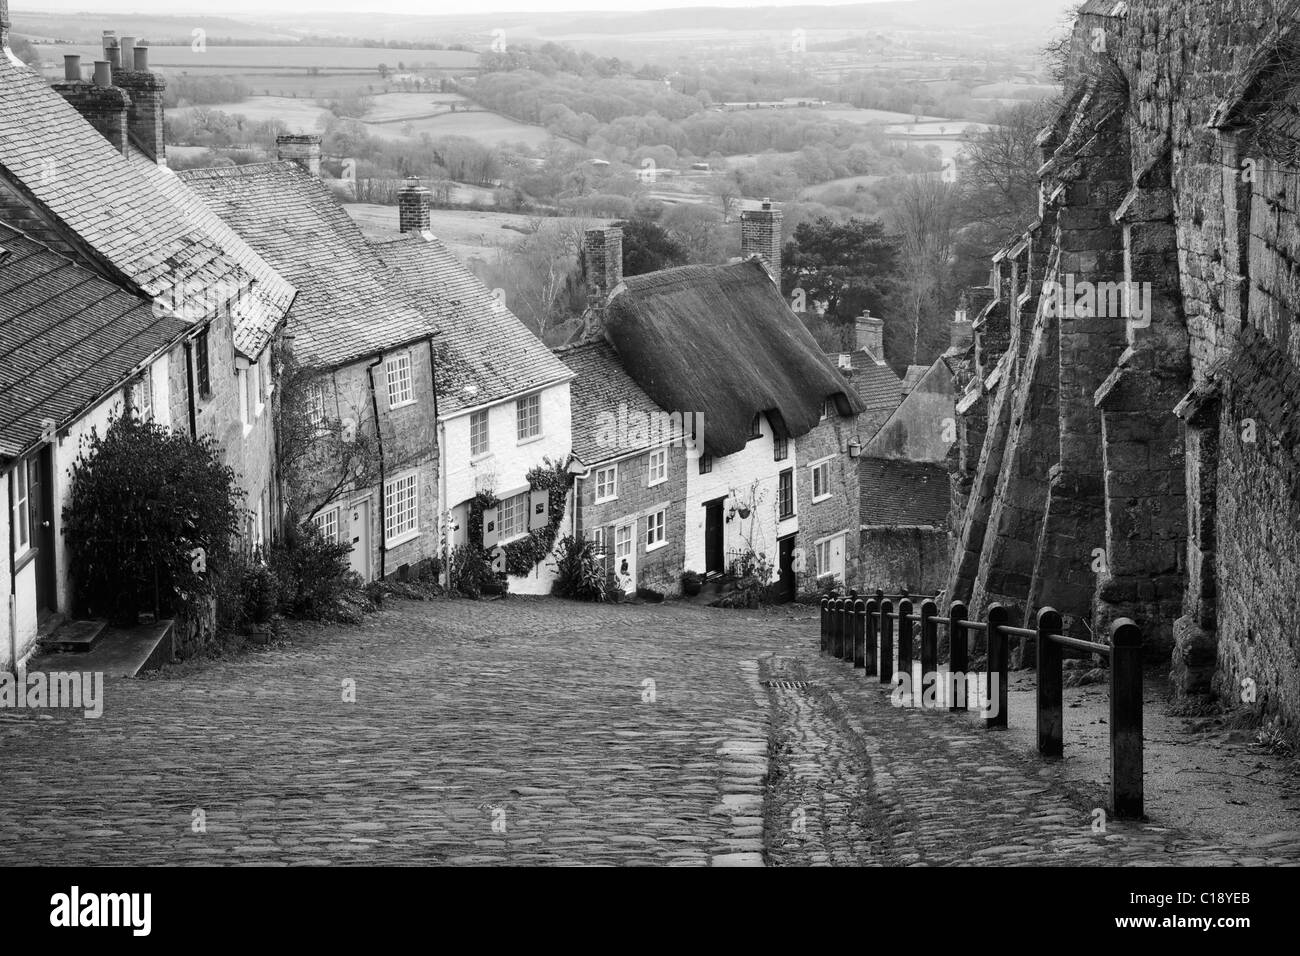 Gold Hill, a famous steep cobbled street in Shaftesbury, Dorset,  England, UK, United Kingdom, GB, Great Britain, Stock Photo